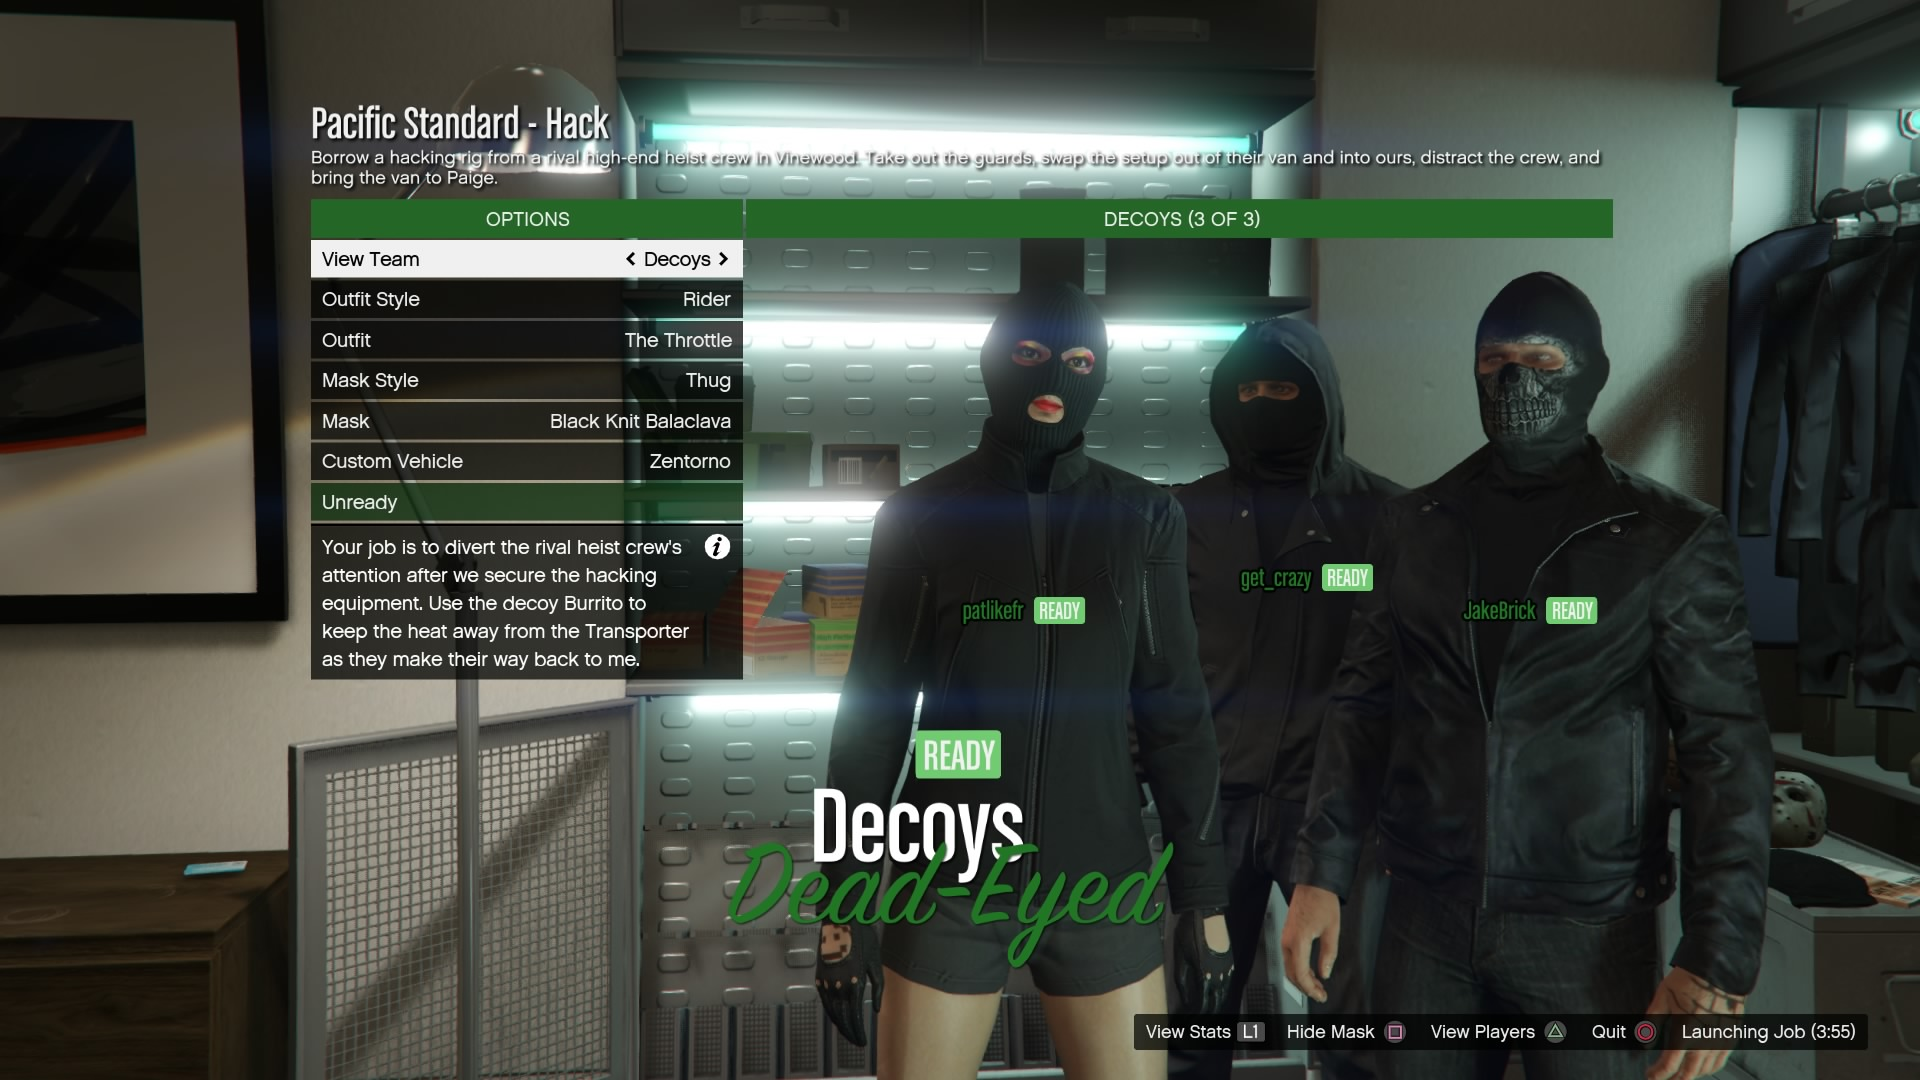 GTA 5 Online Heists guide: The Pacific Standard Job - Page 3 of 6